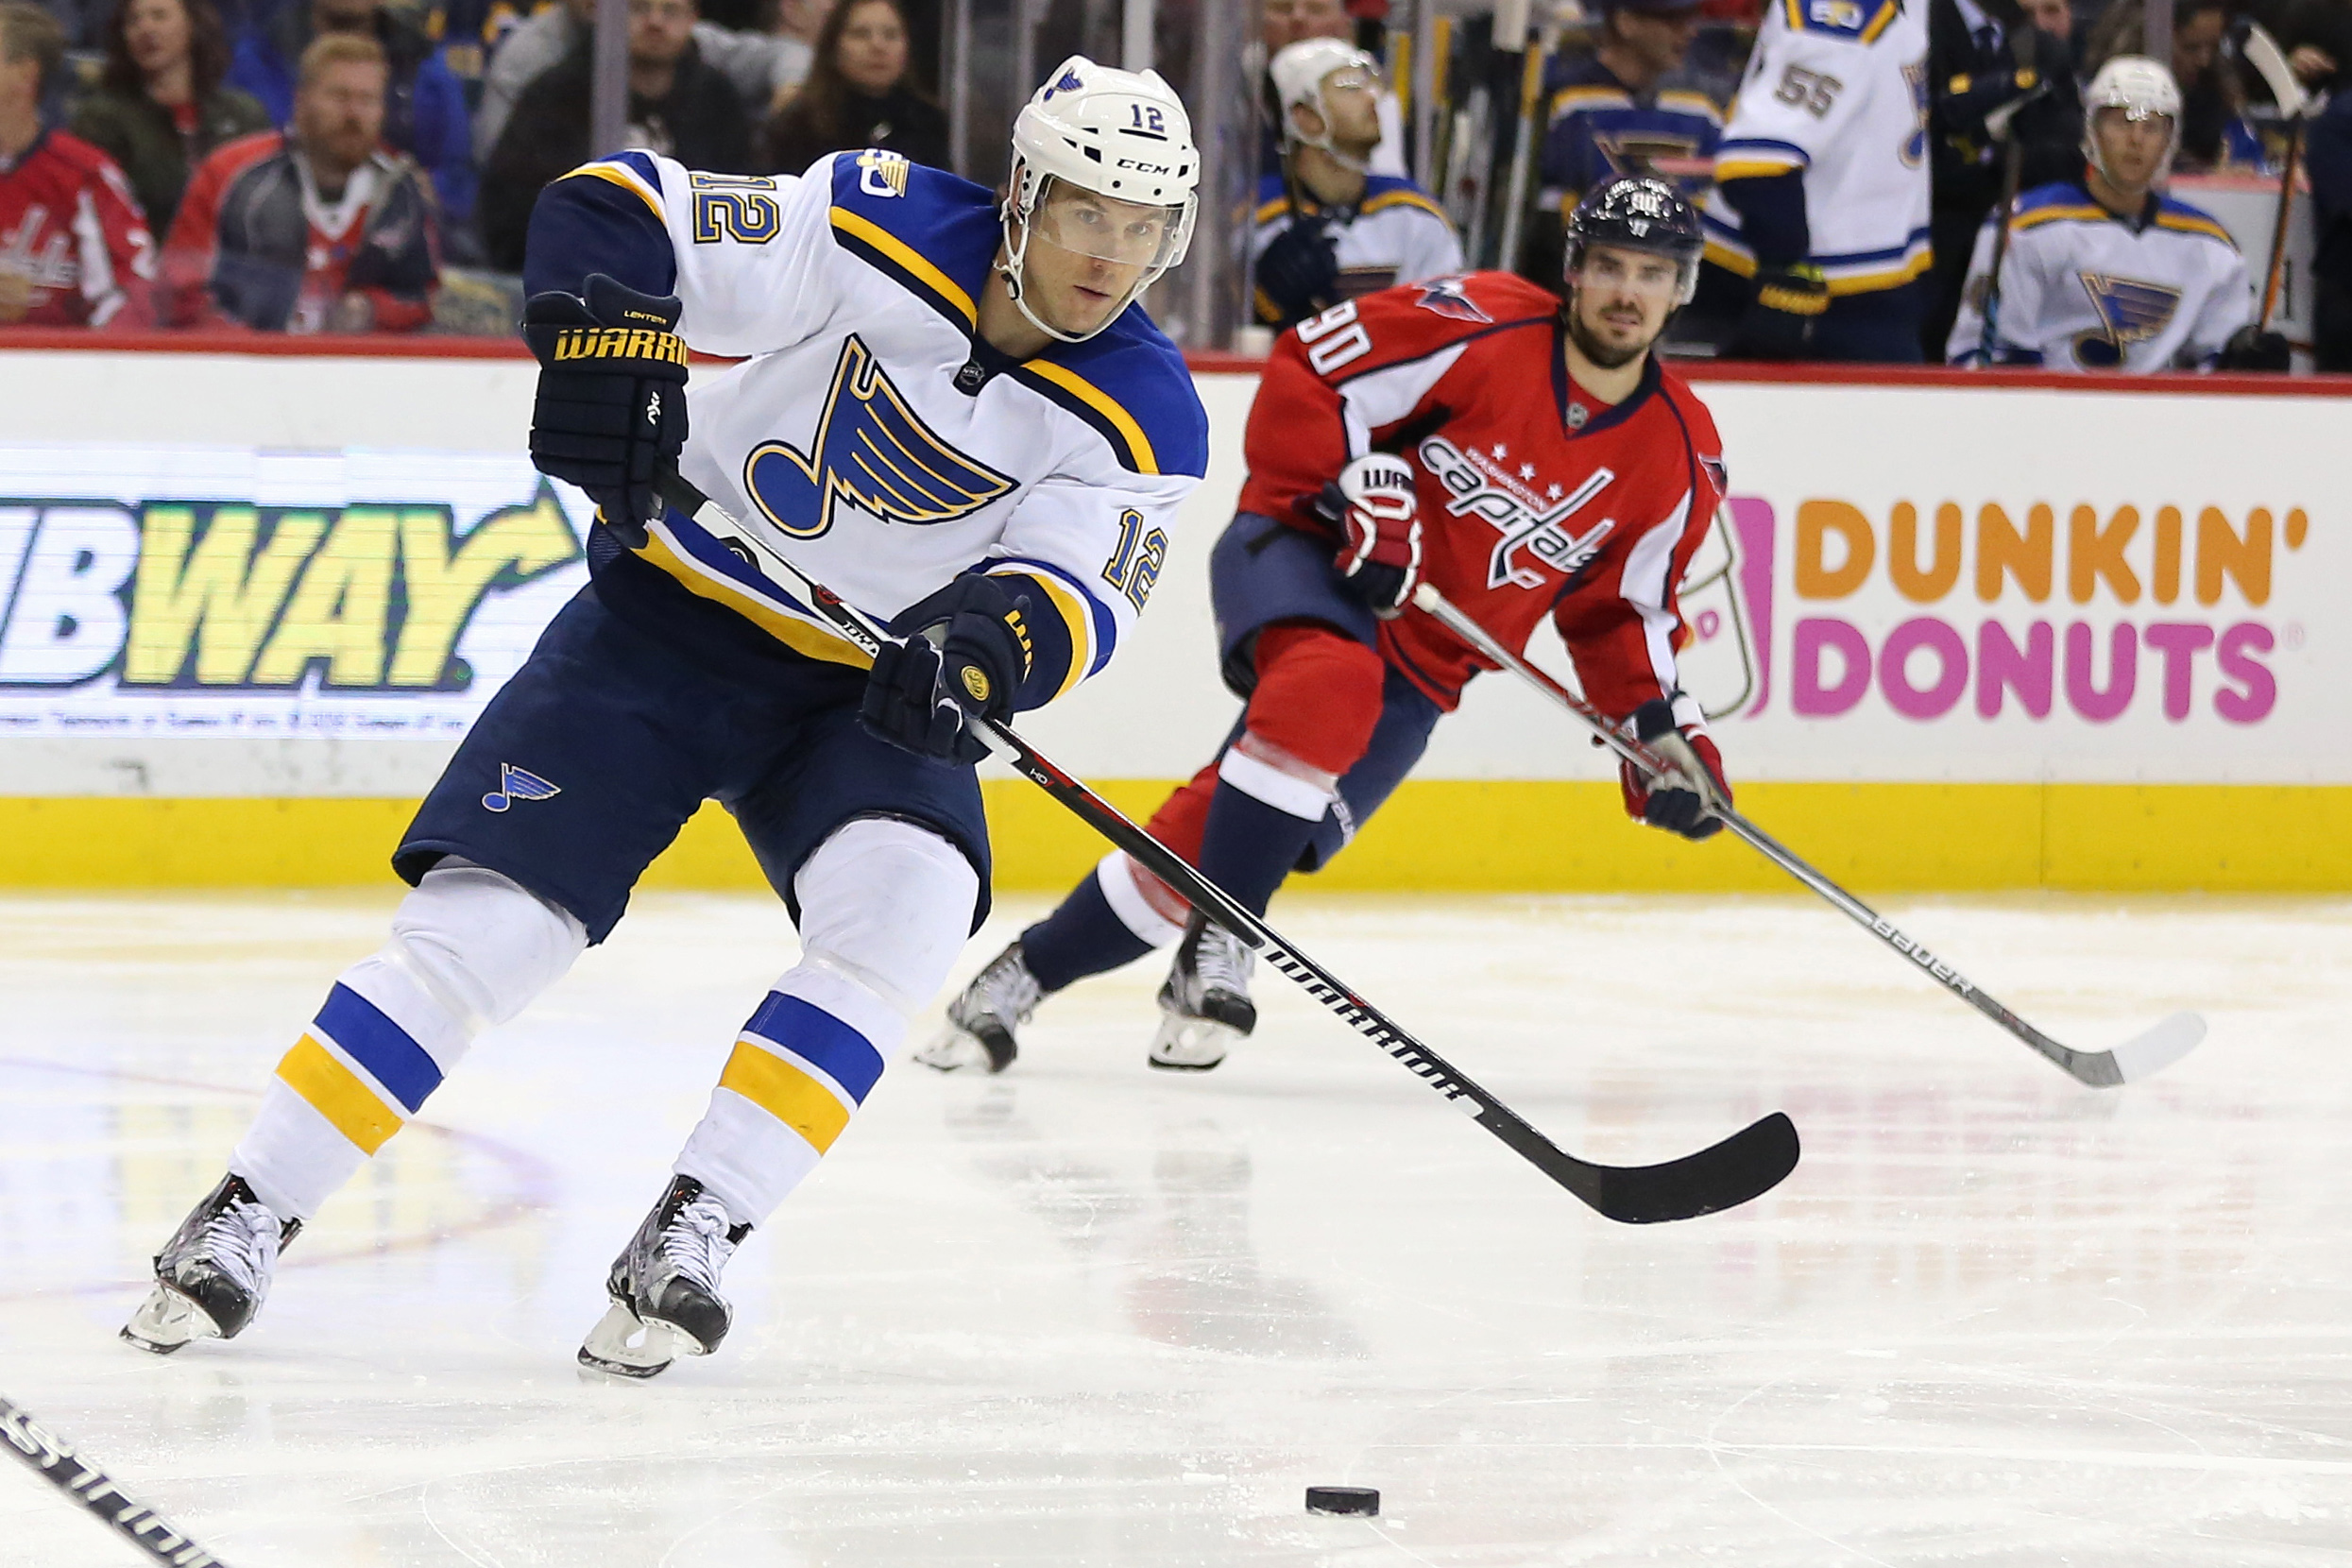 9699876-nhl-st.-louis-blues-at-washington-capitals